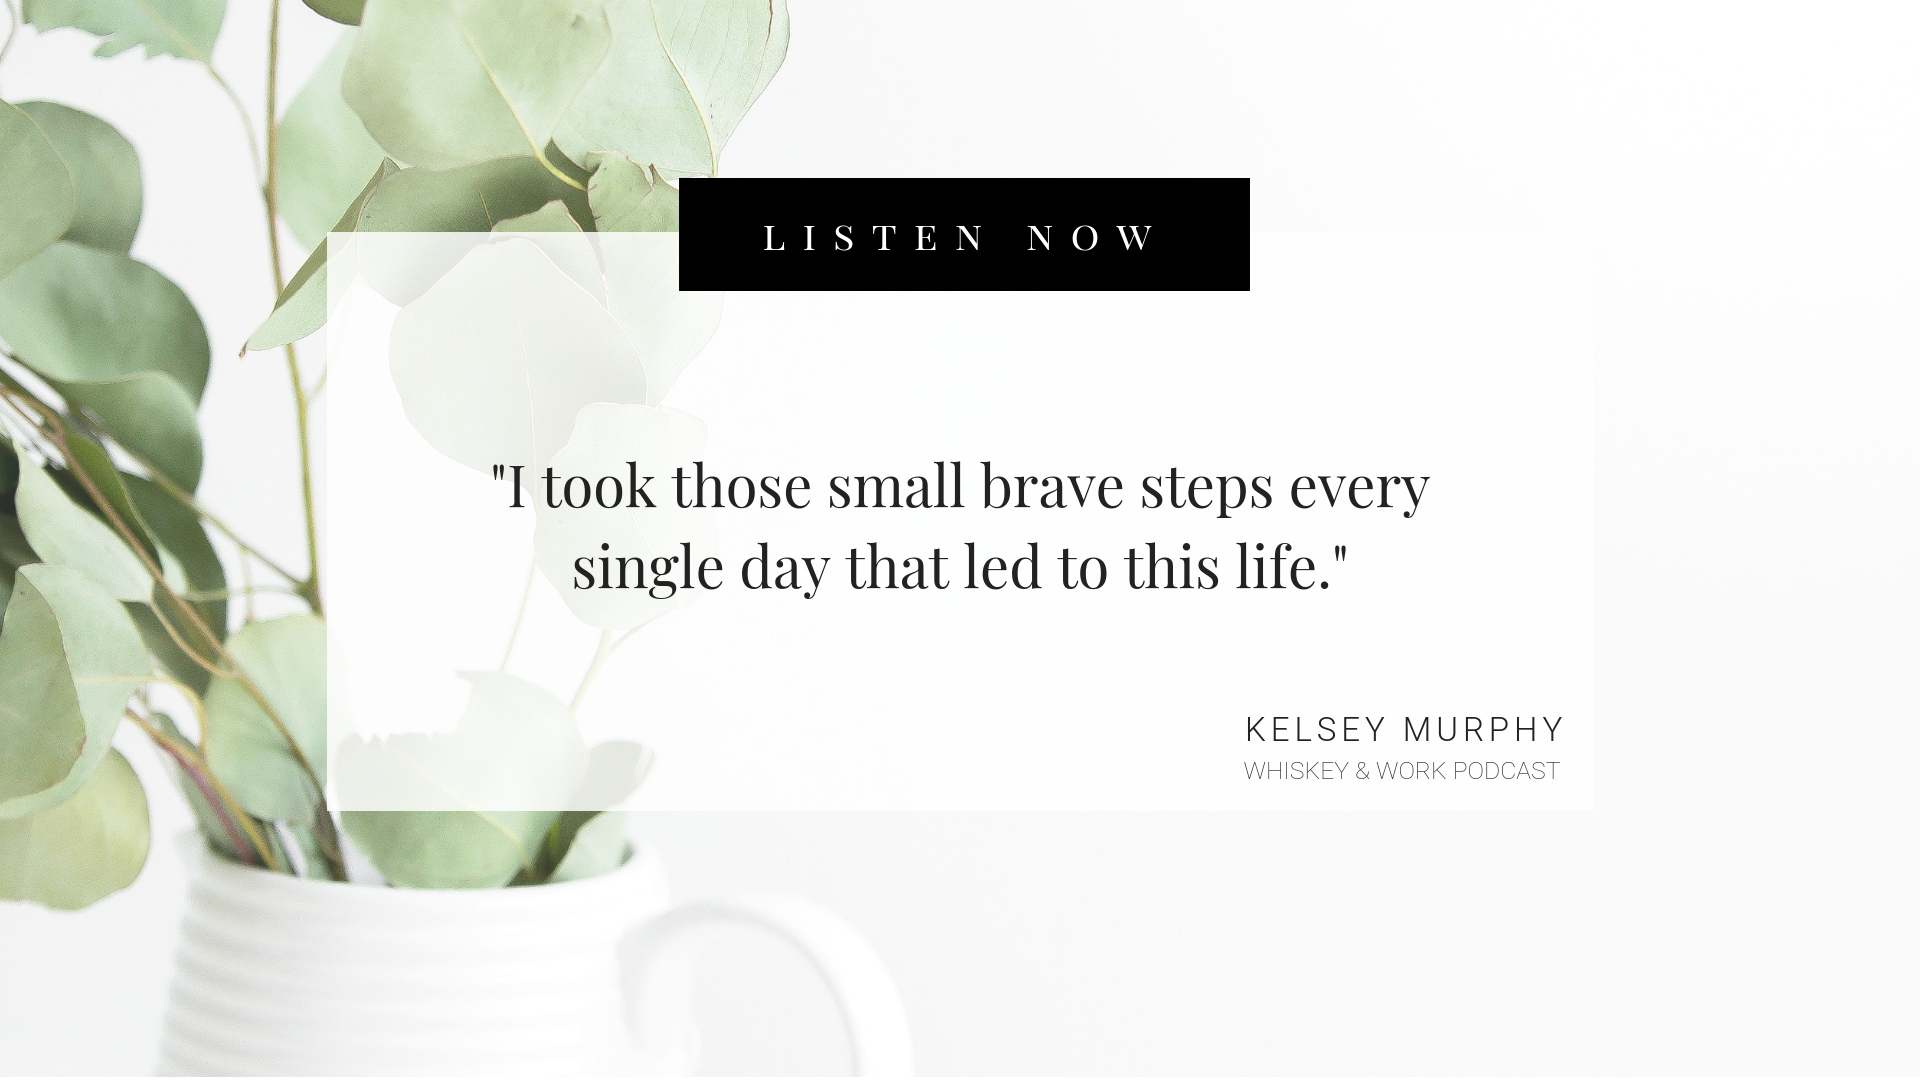 How I Built This Whiskey and Work Podcast with Kelsey Murphy